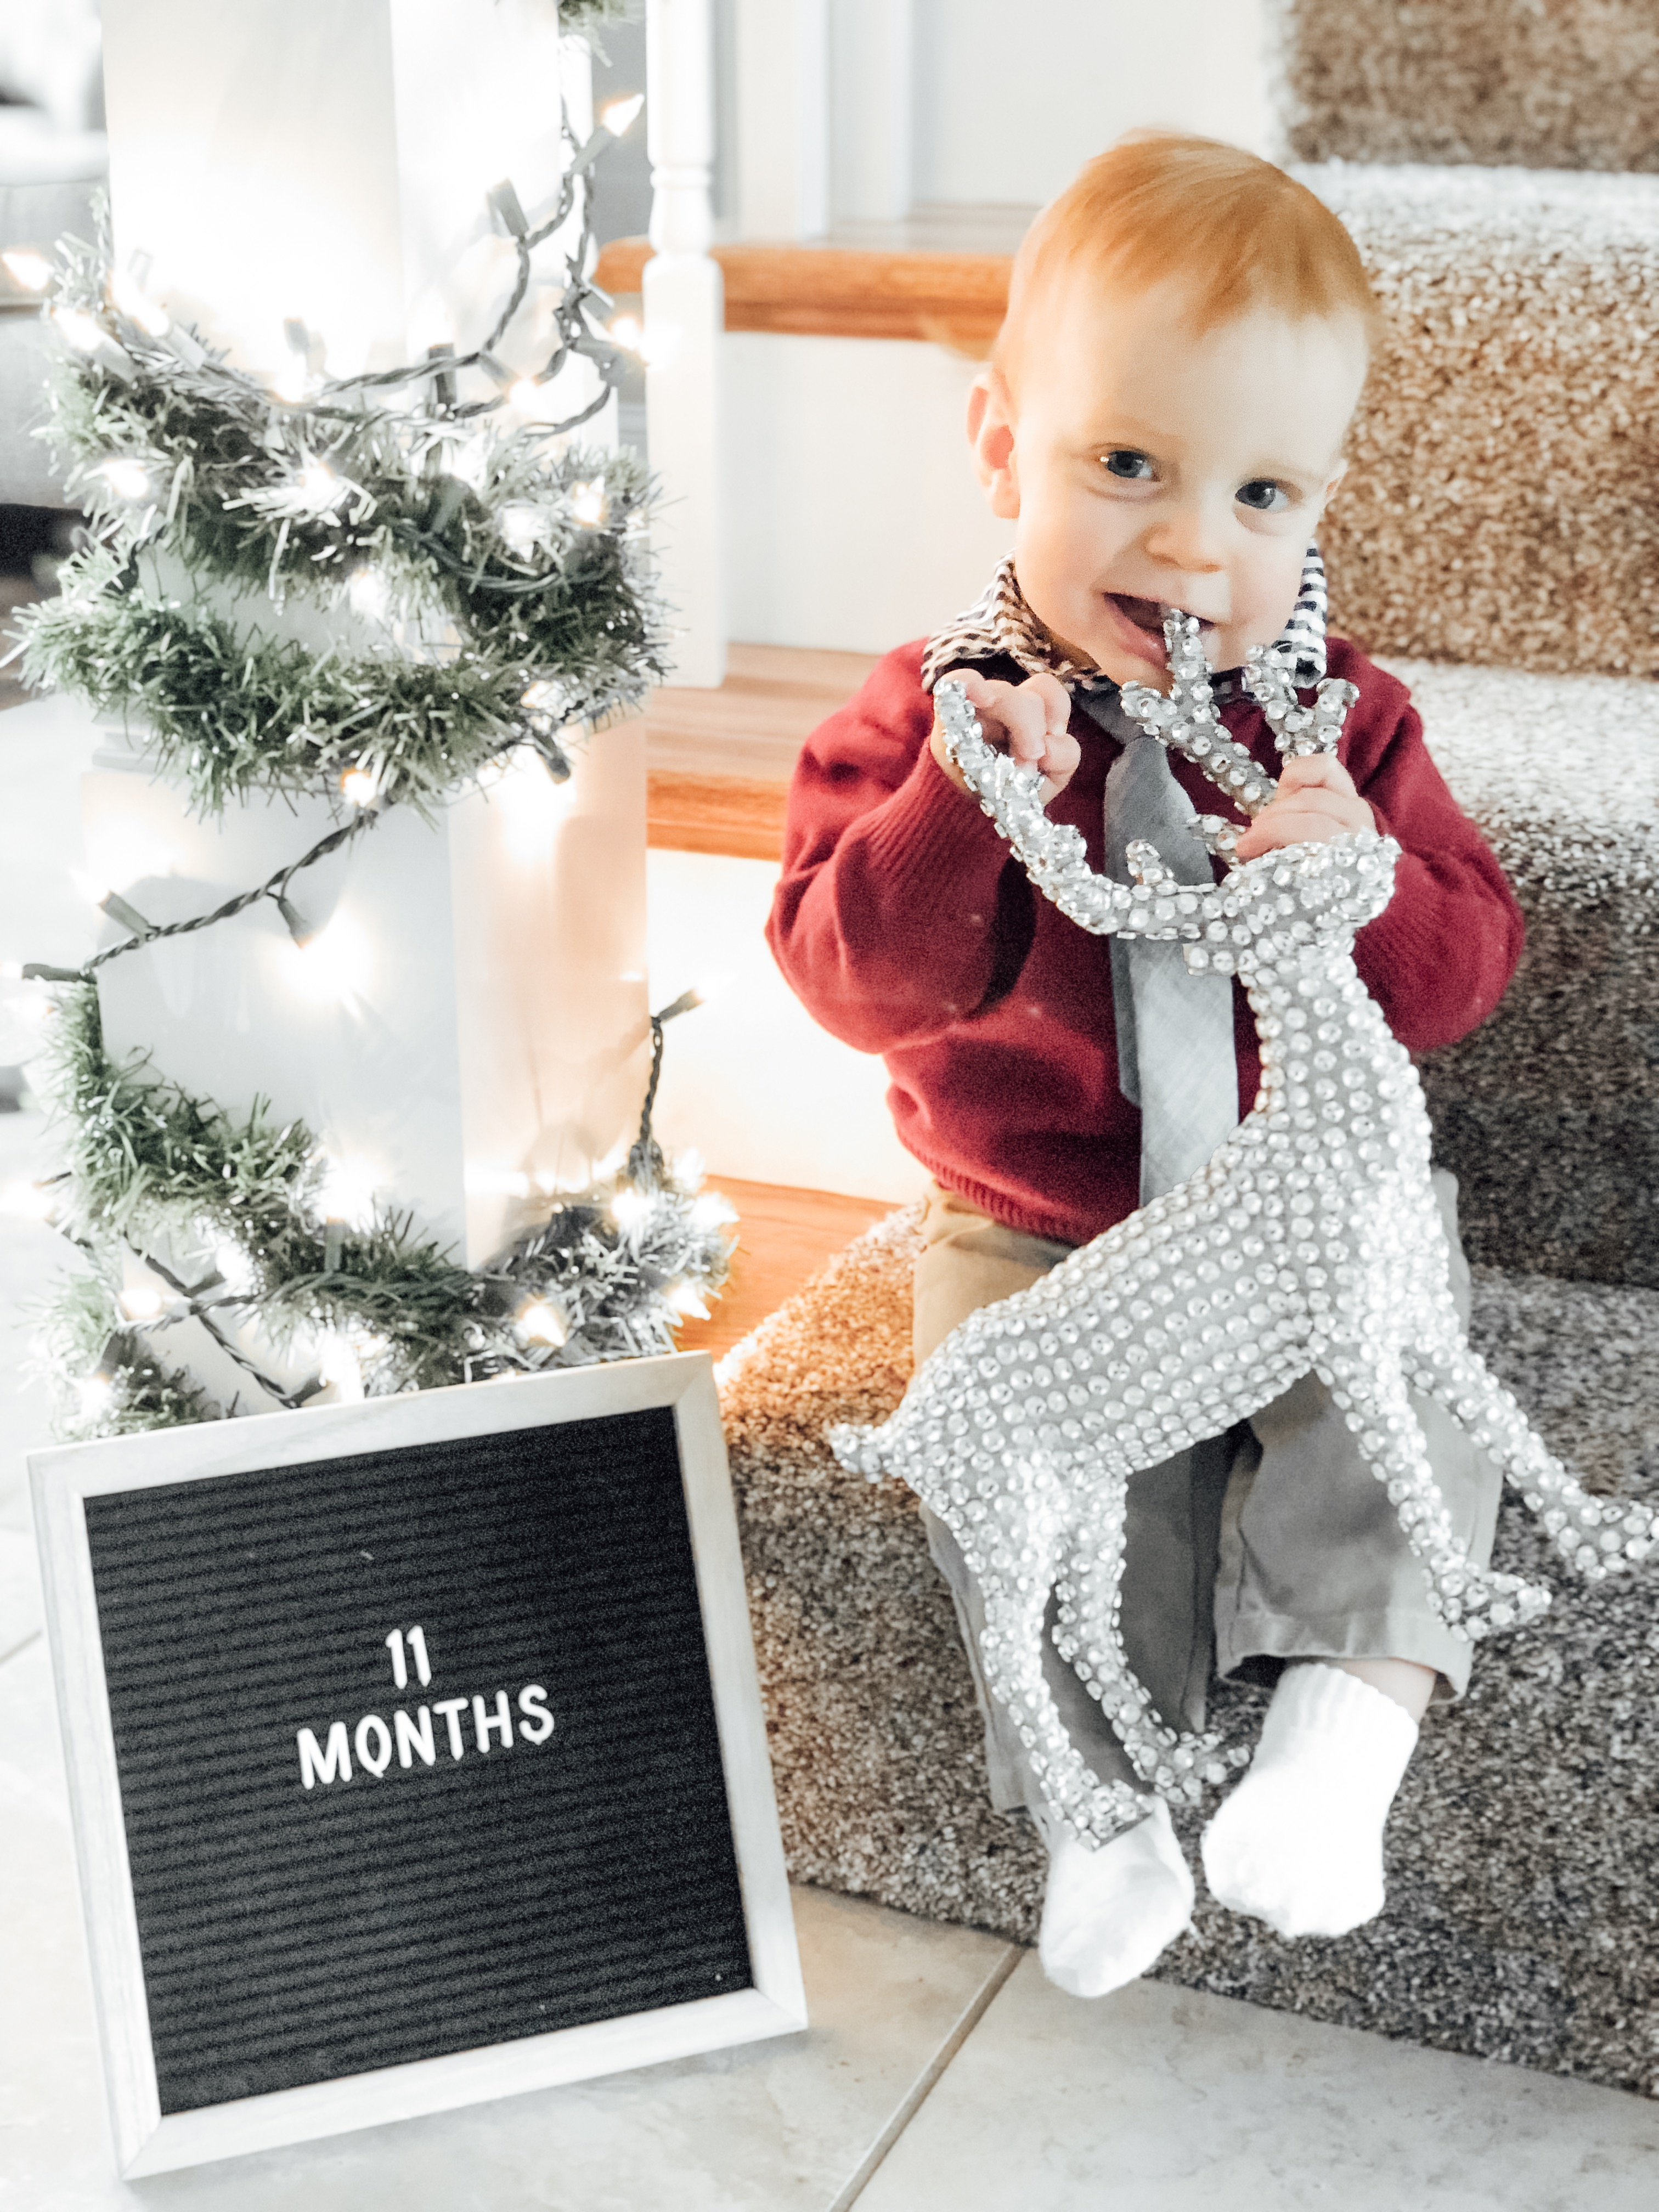 LEYTON'S 11 MONTH UPDATE